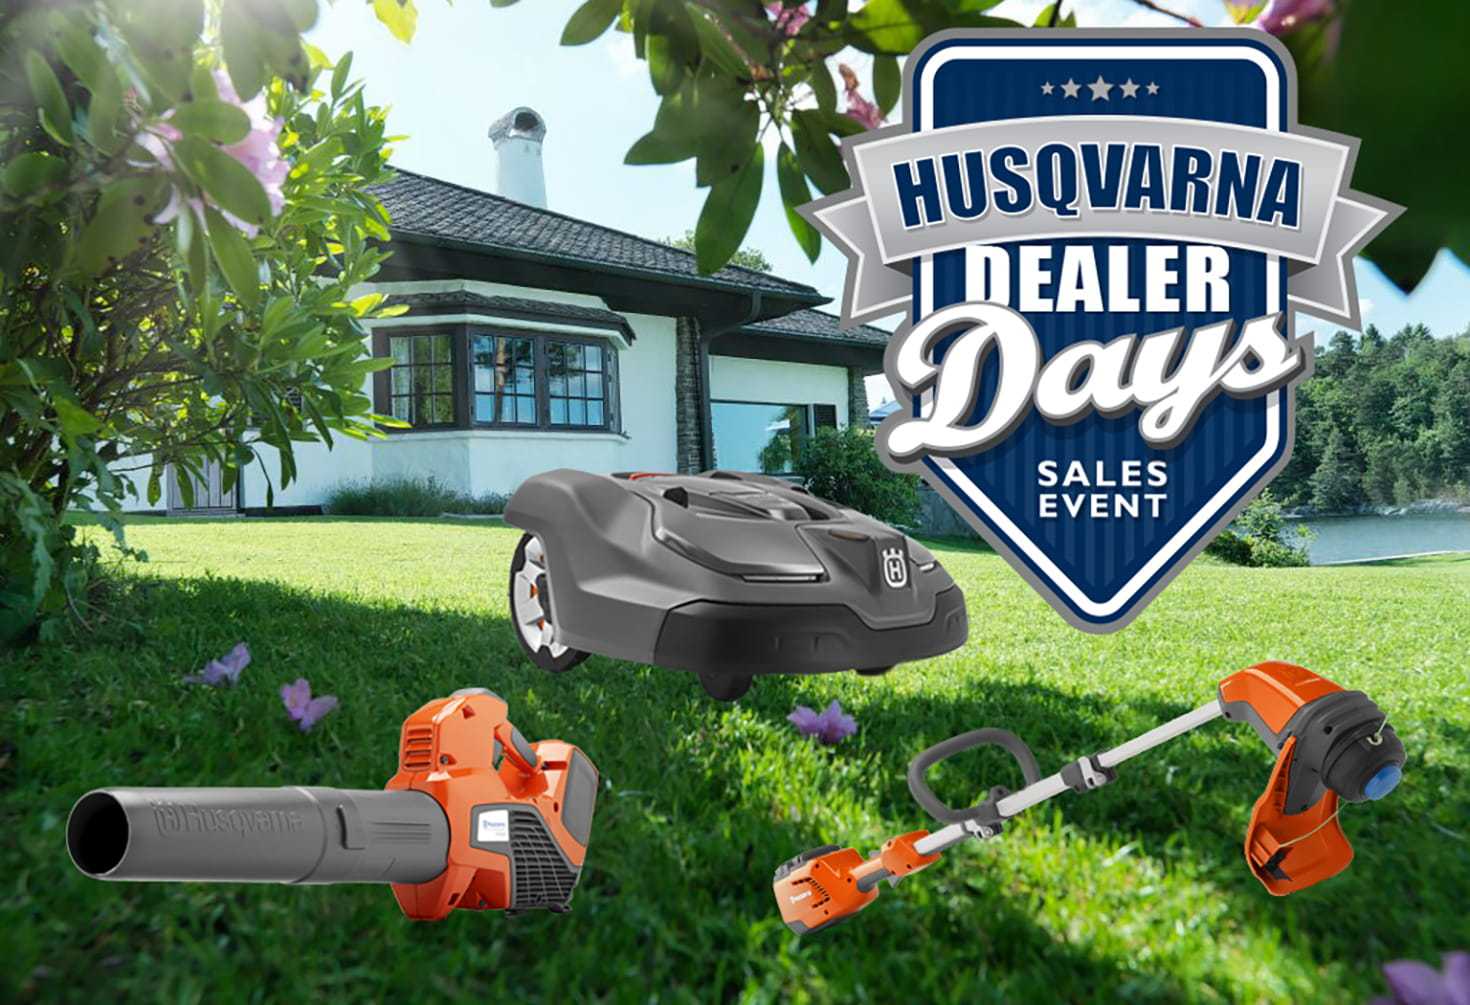 Husqvarna-dealer-days-2019